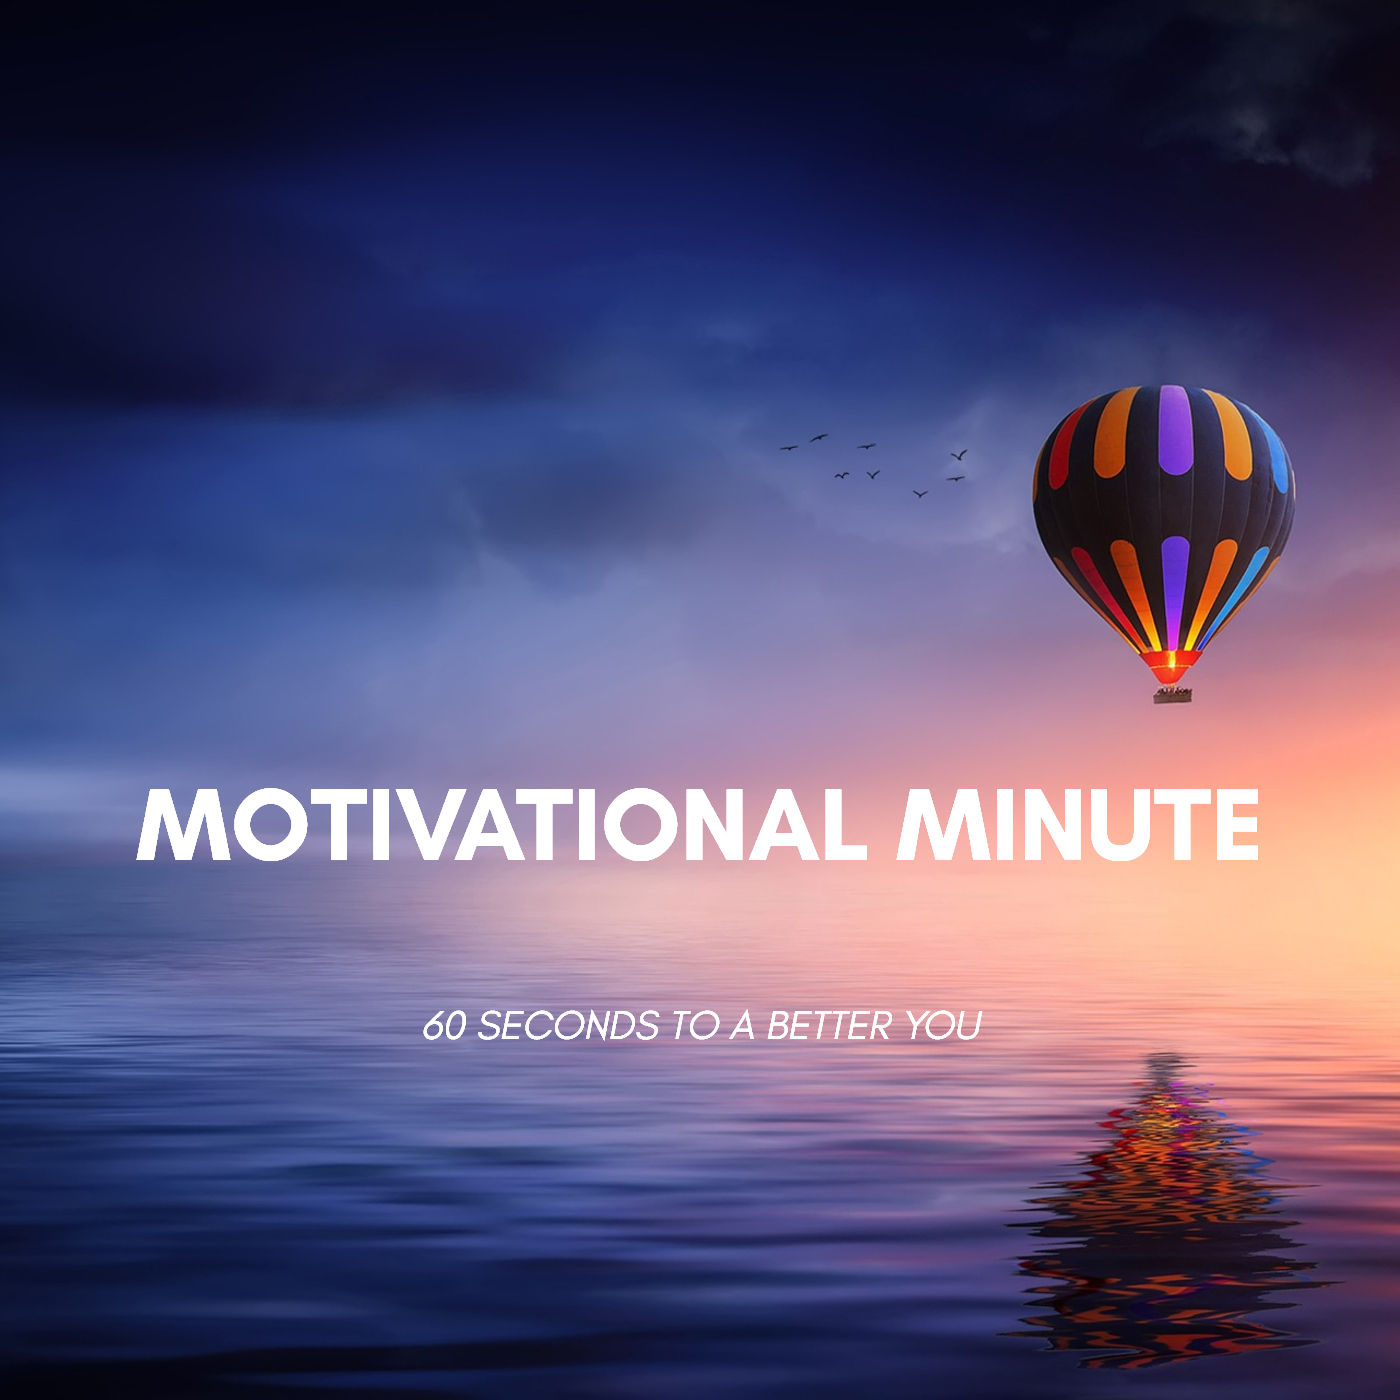 Motivational Minute